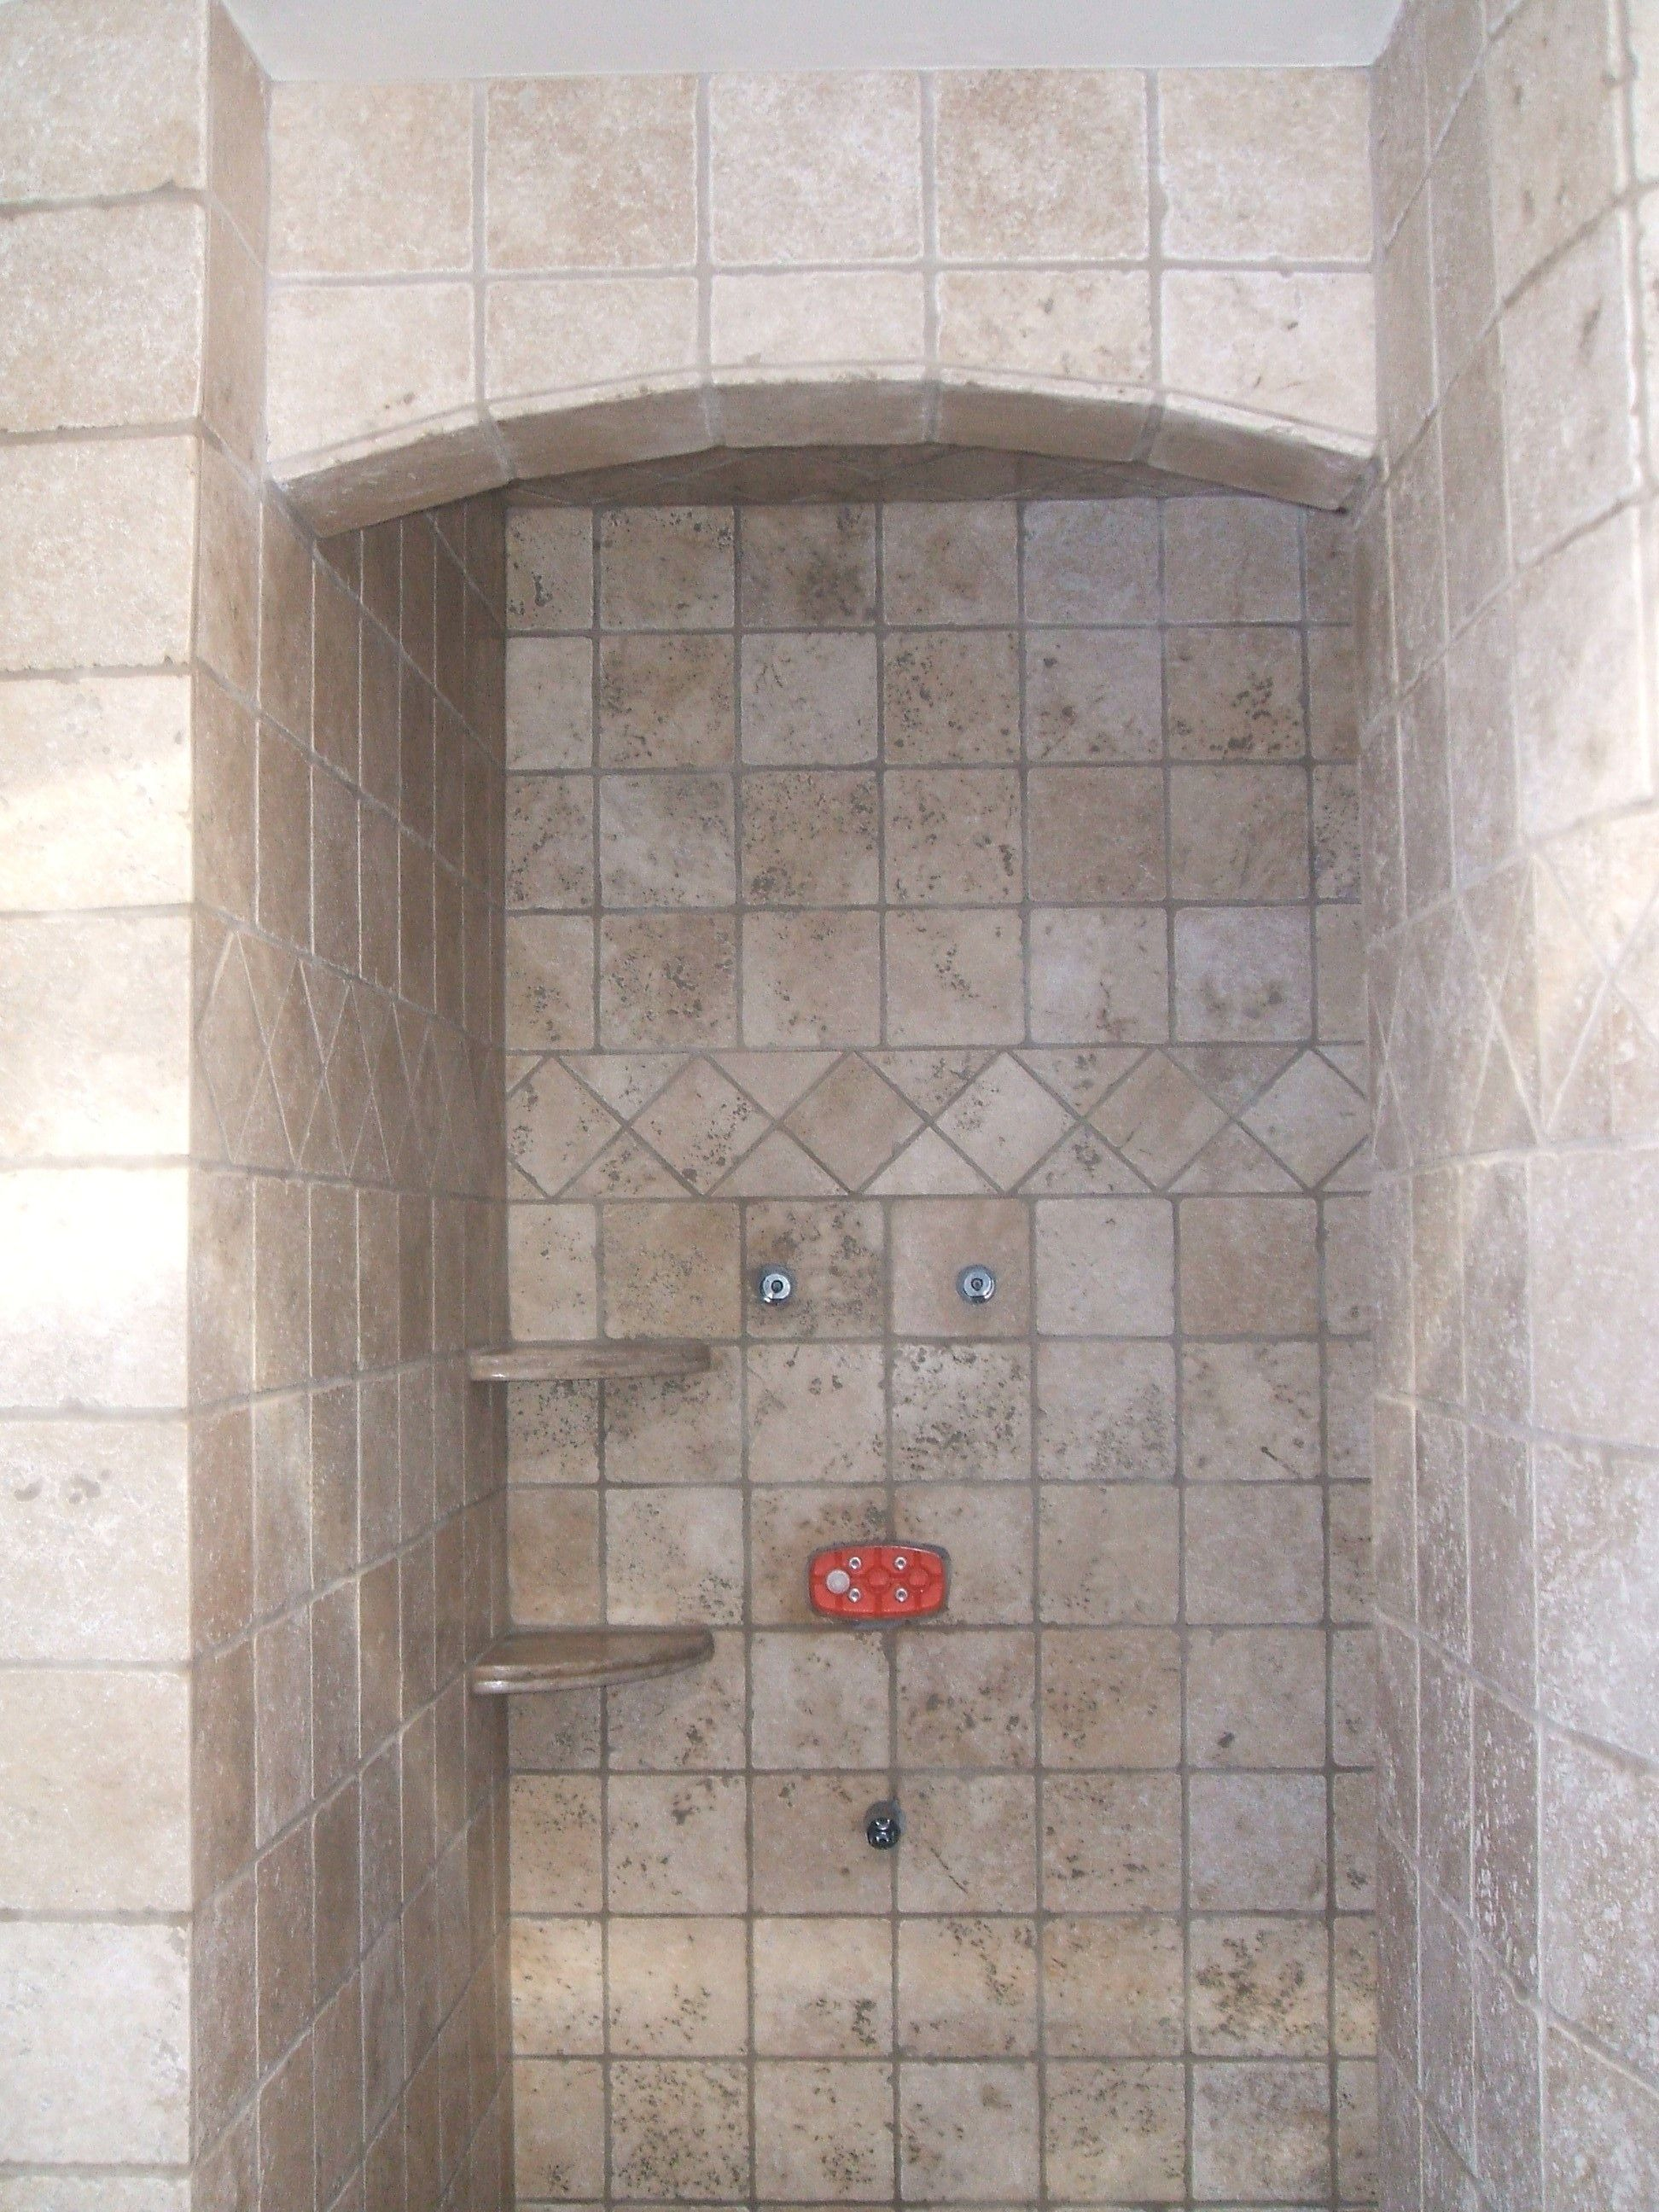 Terrific ceramic tile shower ideas small bathrooms with for Bathroom porcelain tile designs